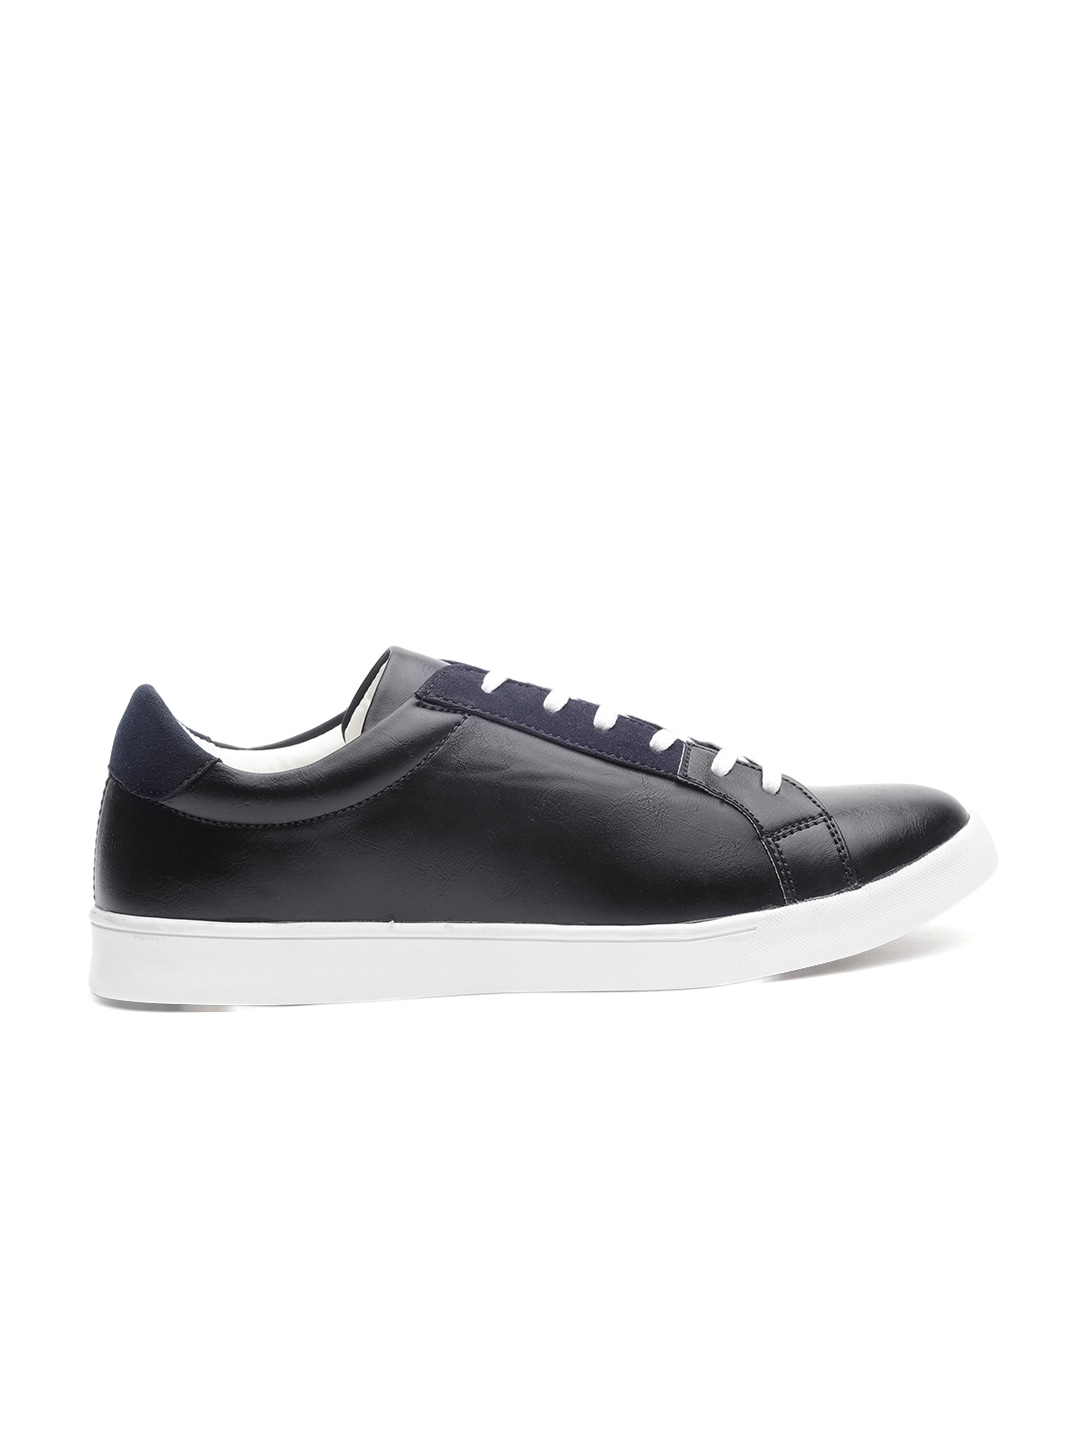 buy online dc084 cd7aa Casual Shoes For Men - Buy Casual   Flat Shoes For Men   Myntra